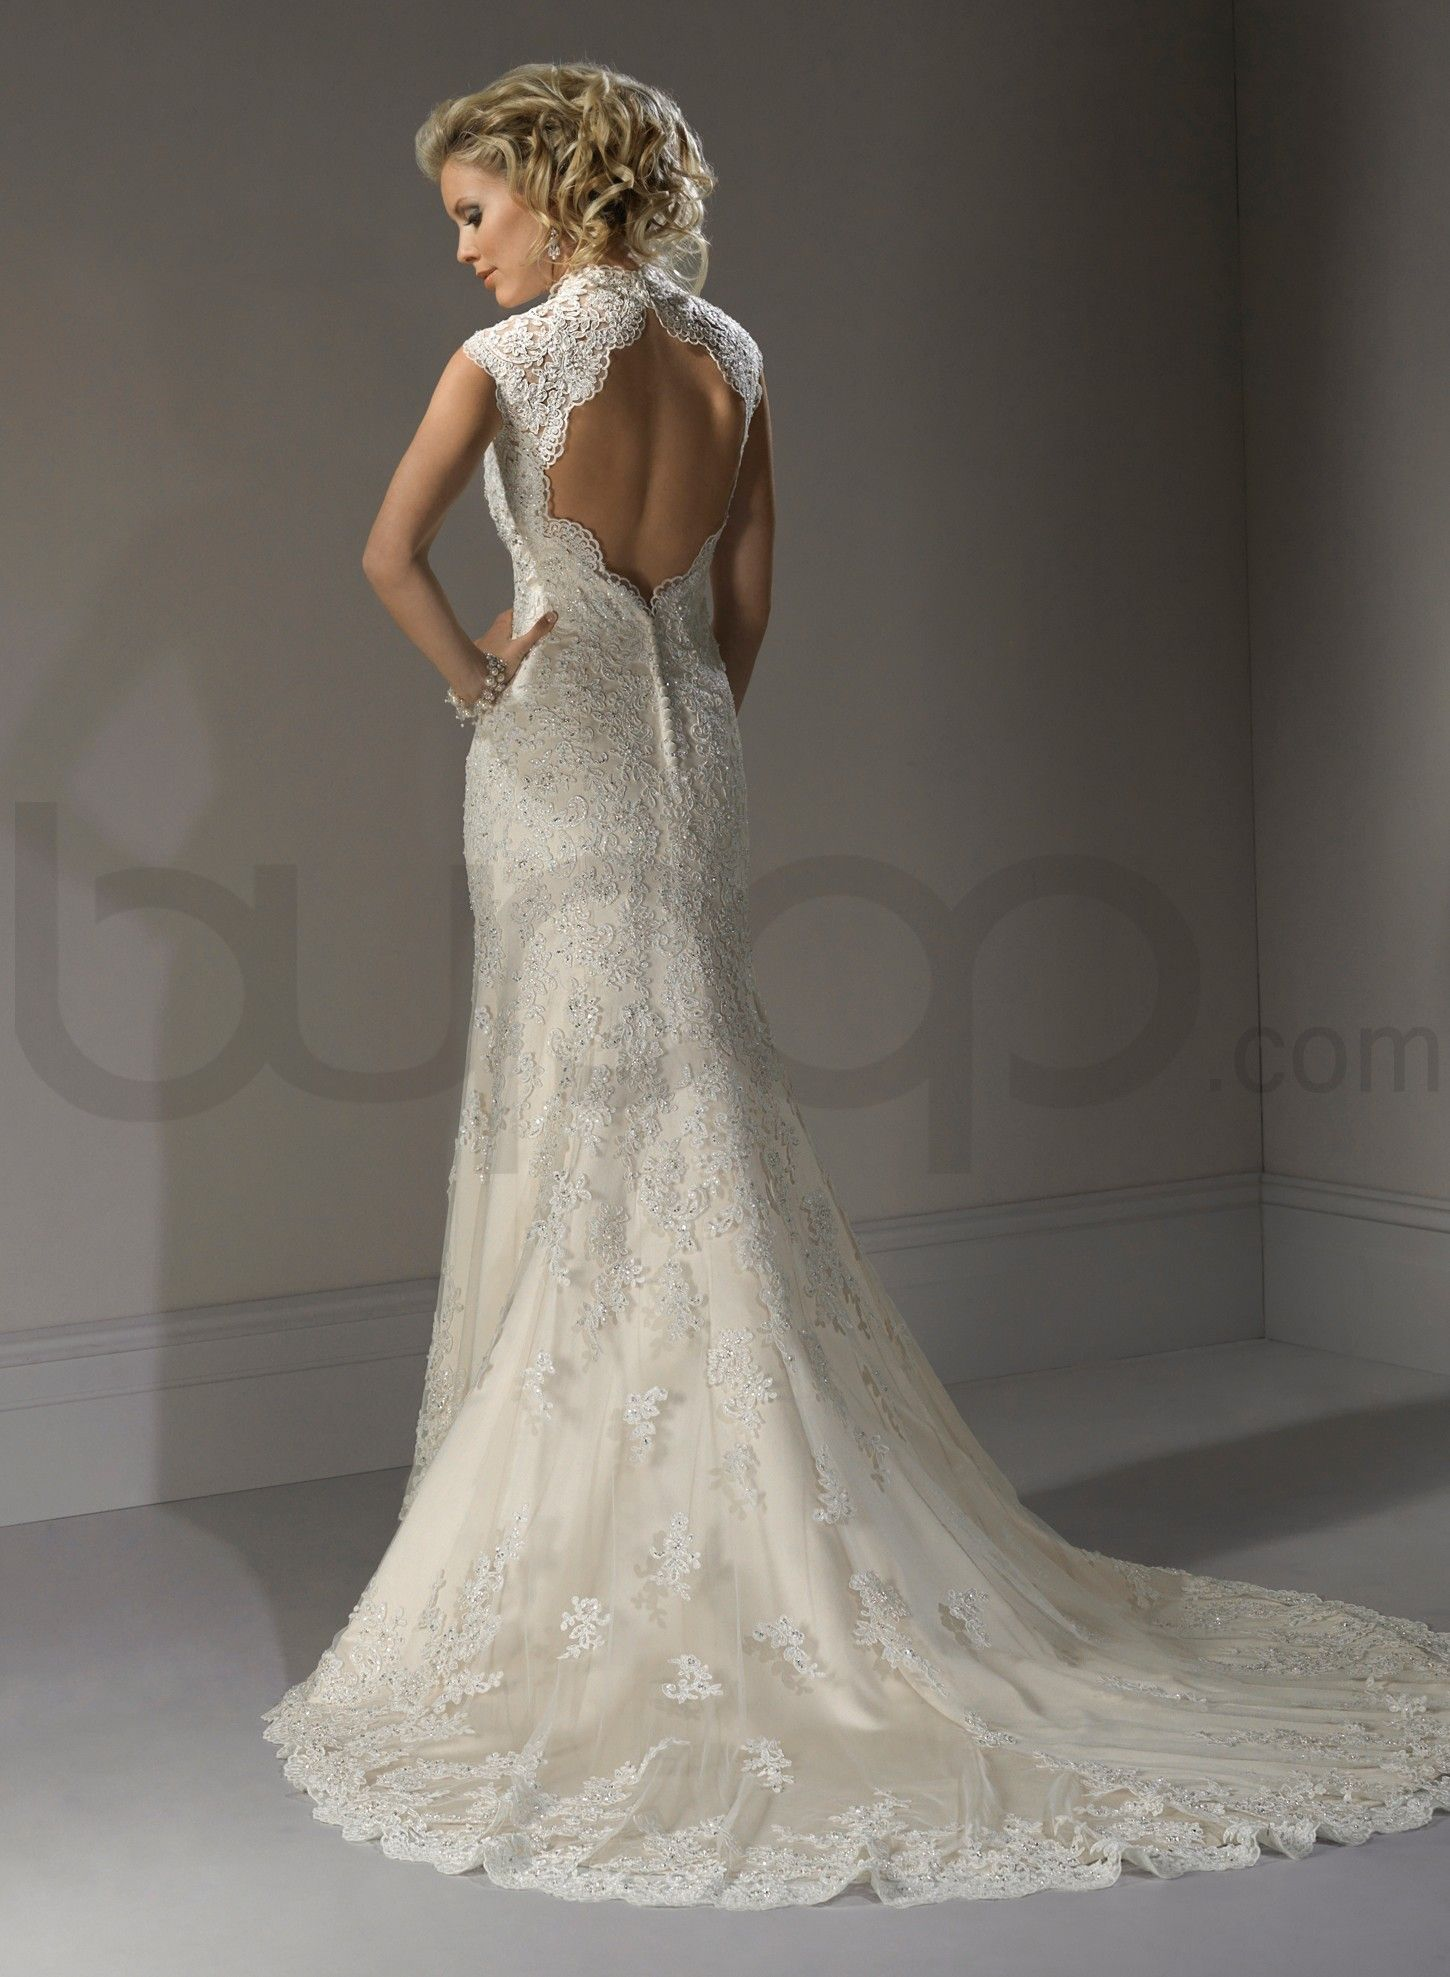 Lace Sweetheart Neckline A Line Wedding Dress